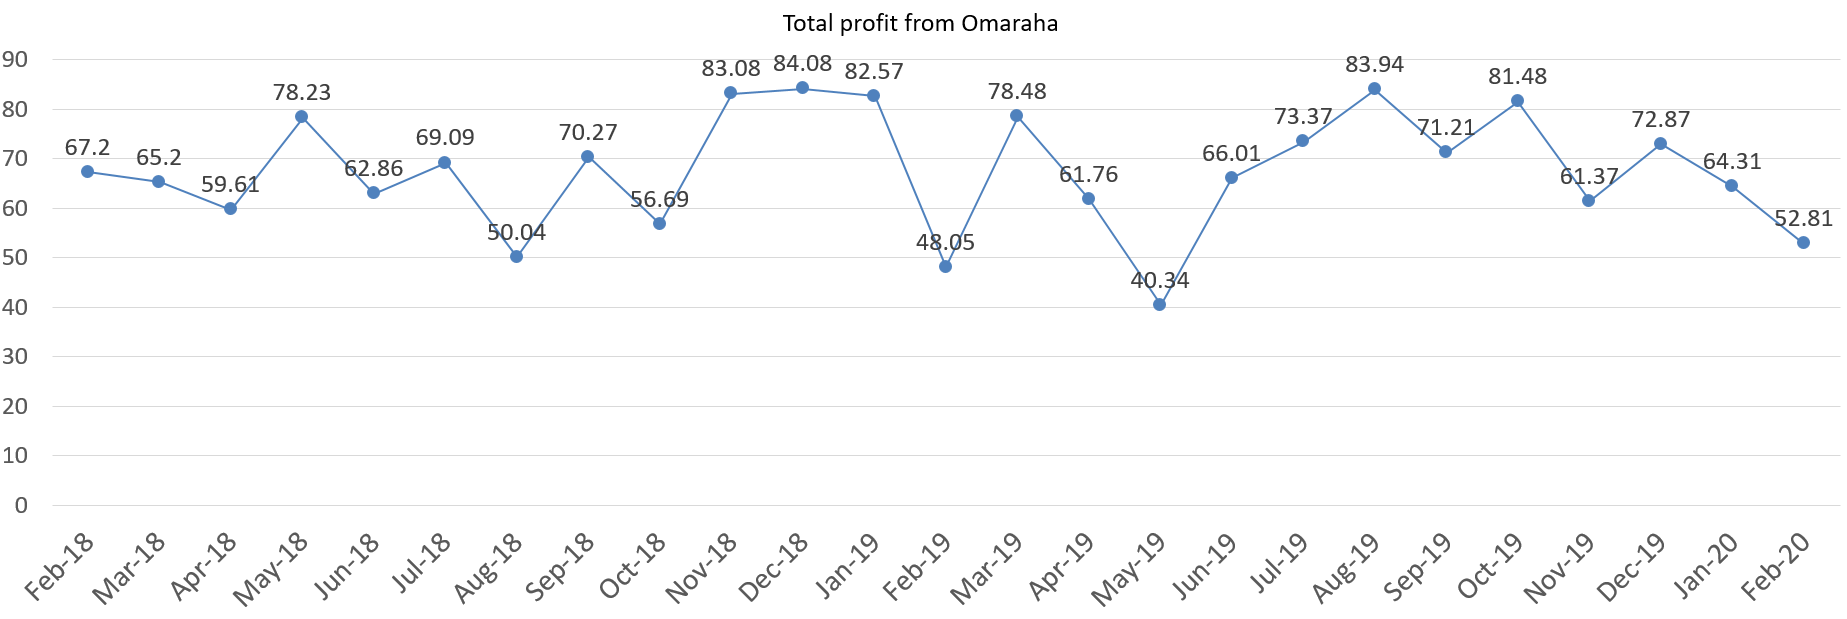 Total profit from Omaraha interests february 2020